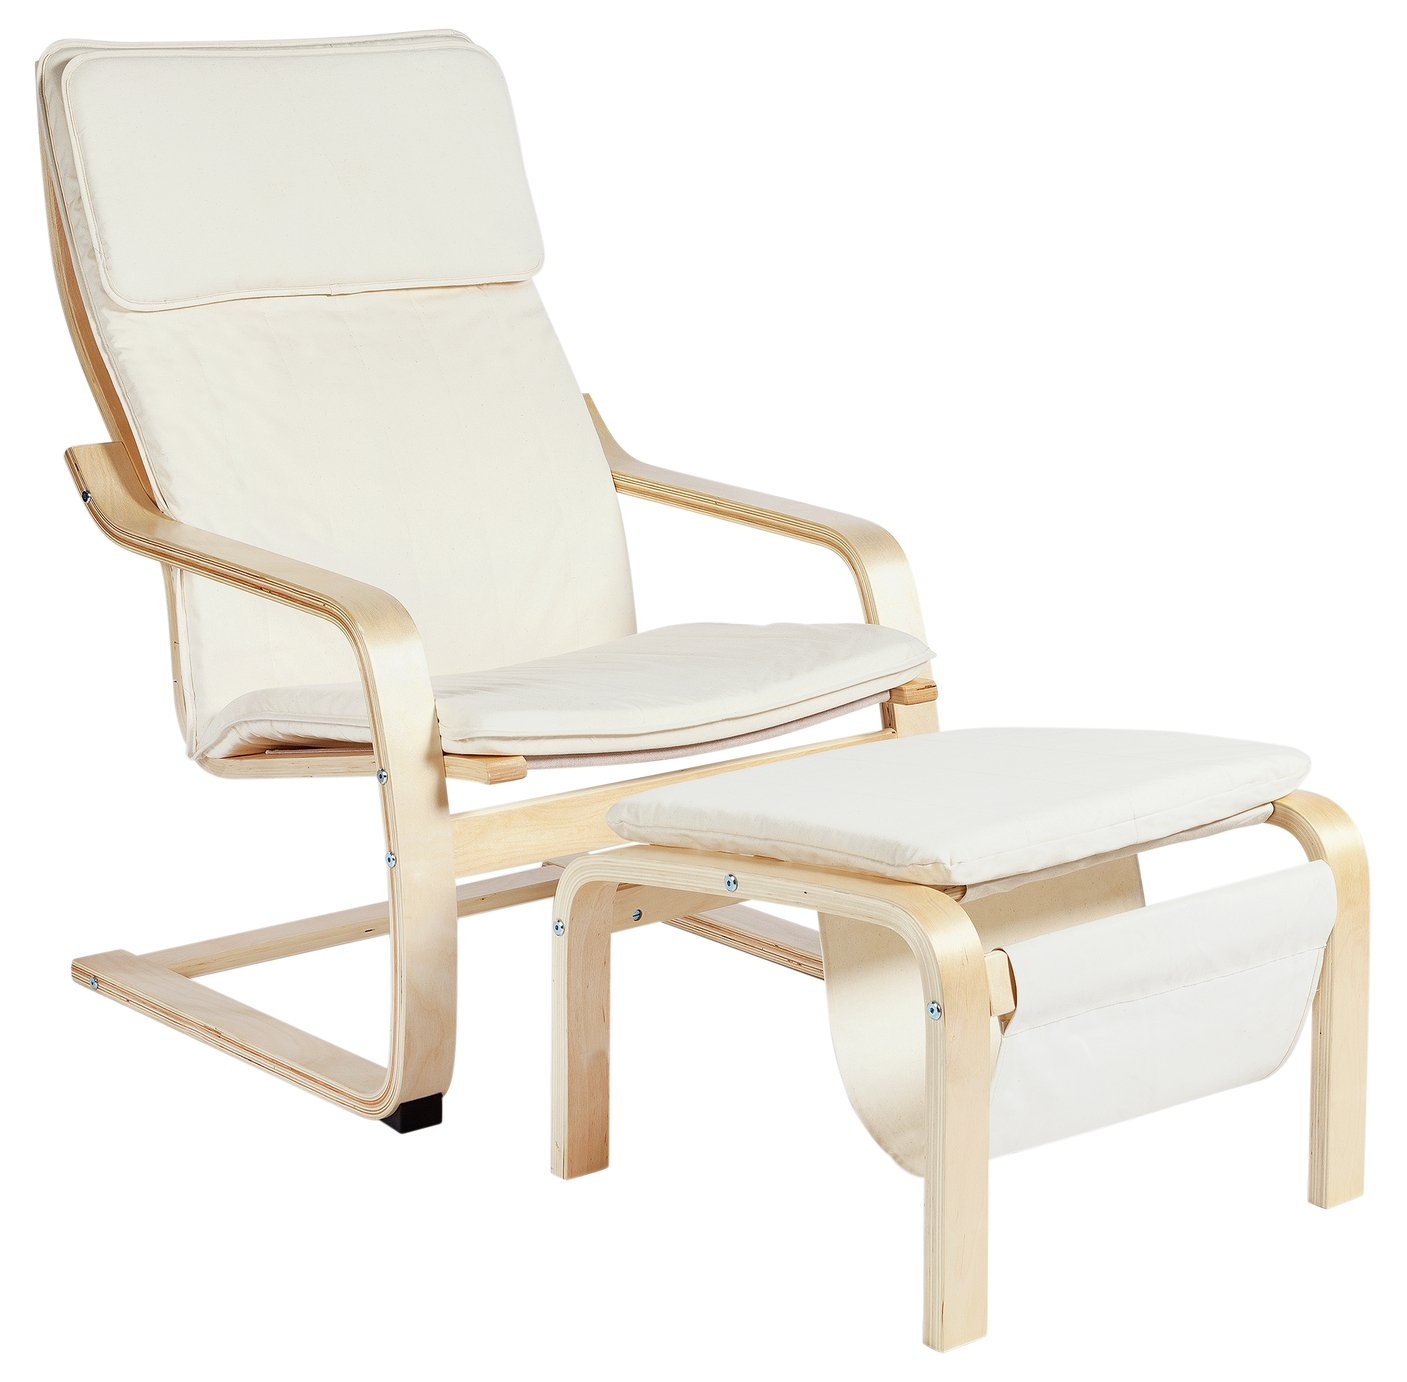 Argos Home Bentwood High Back Chair & Footstool - Natural